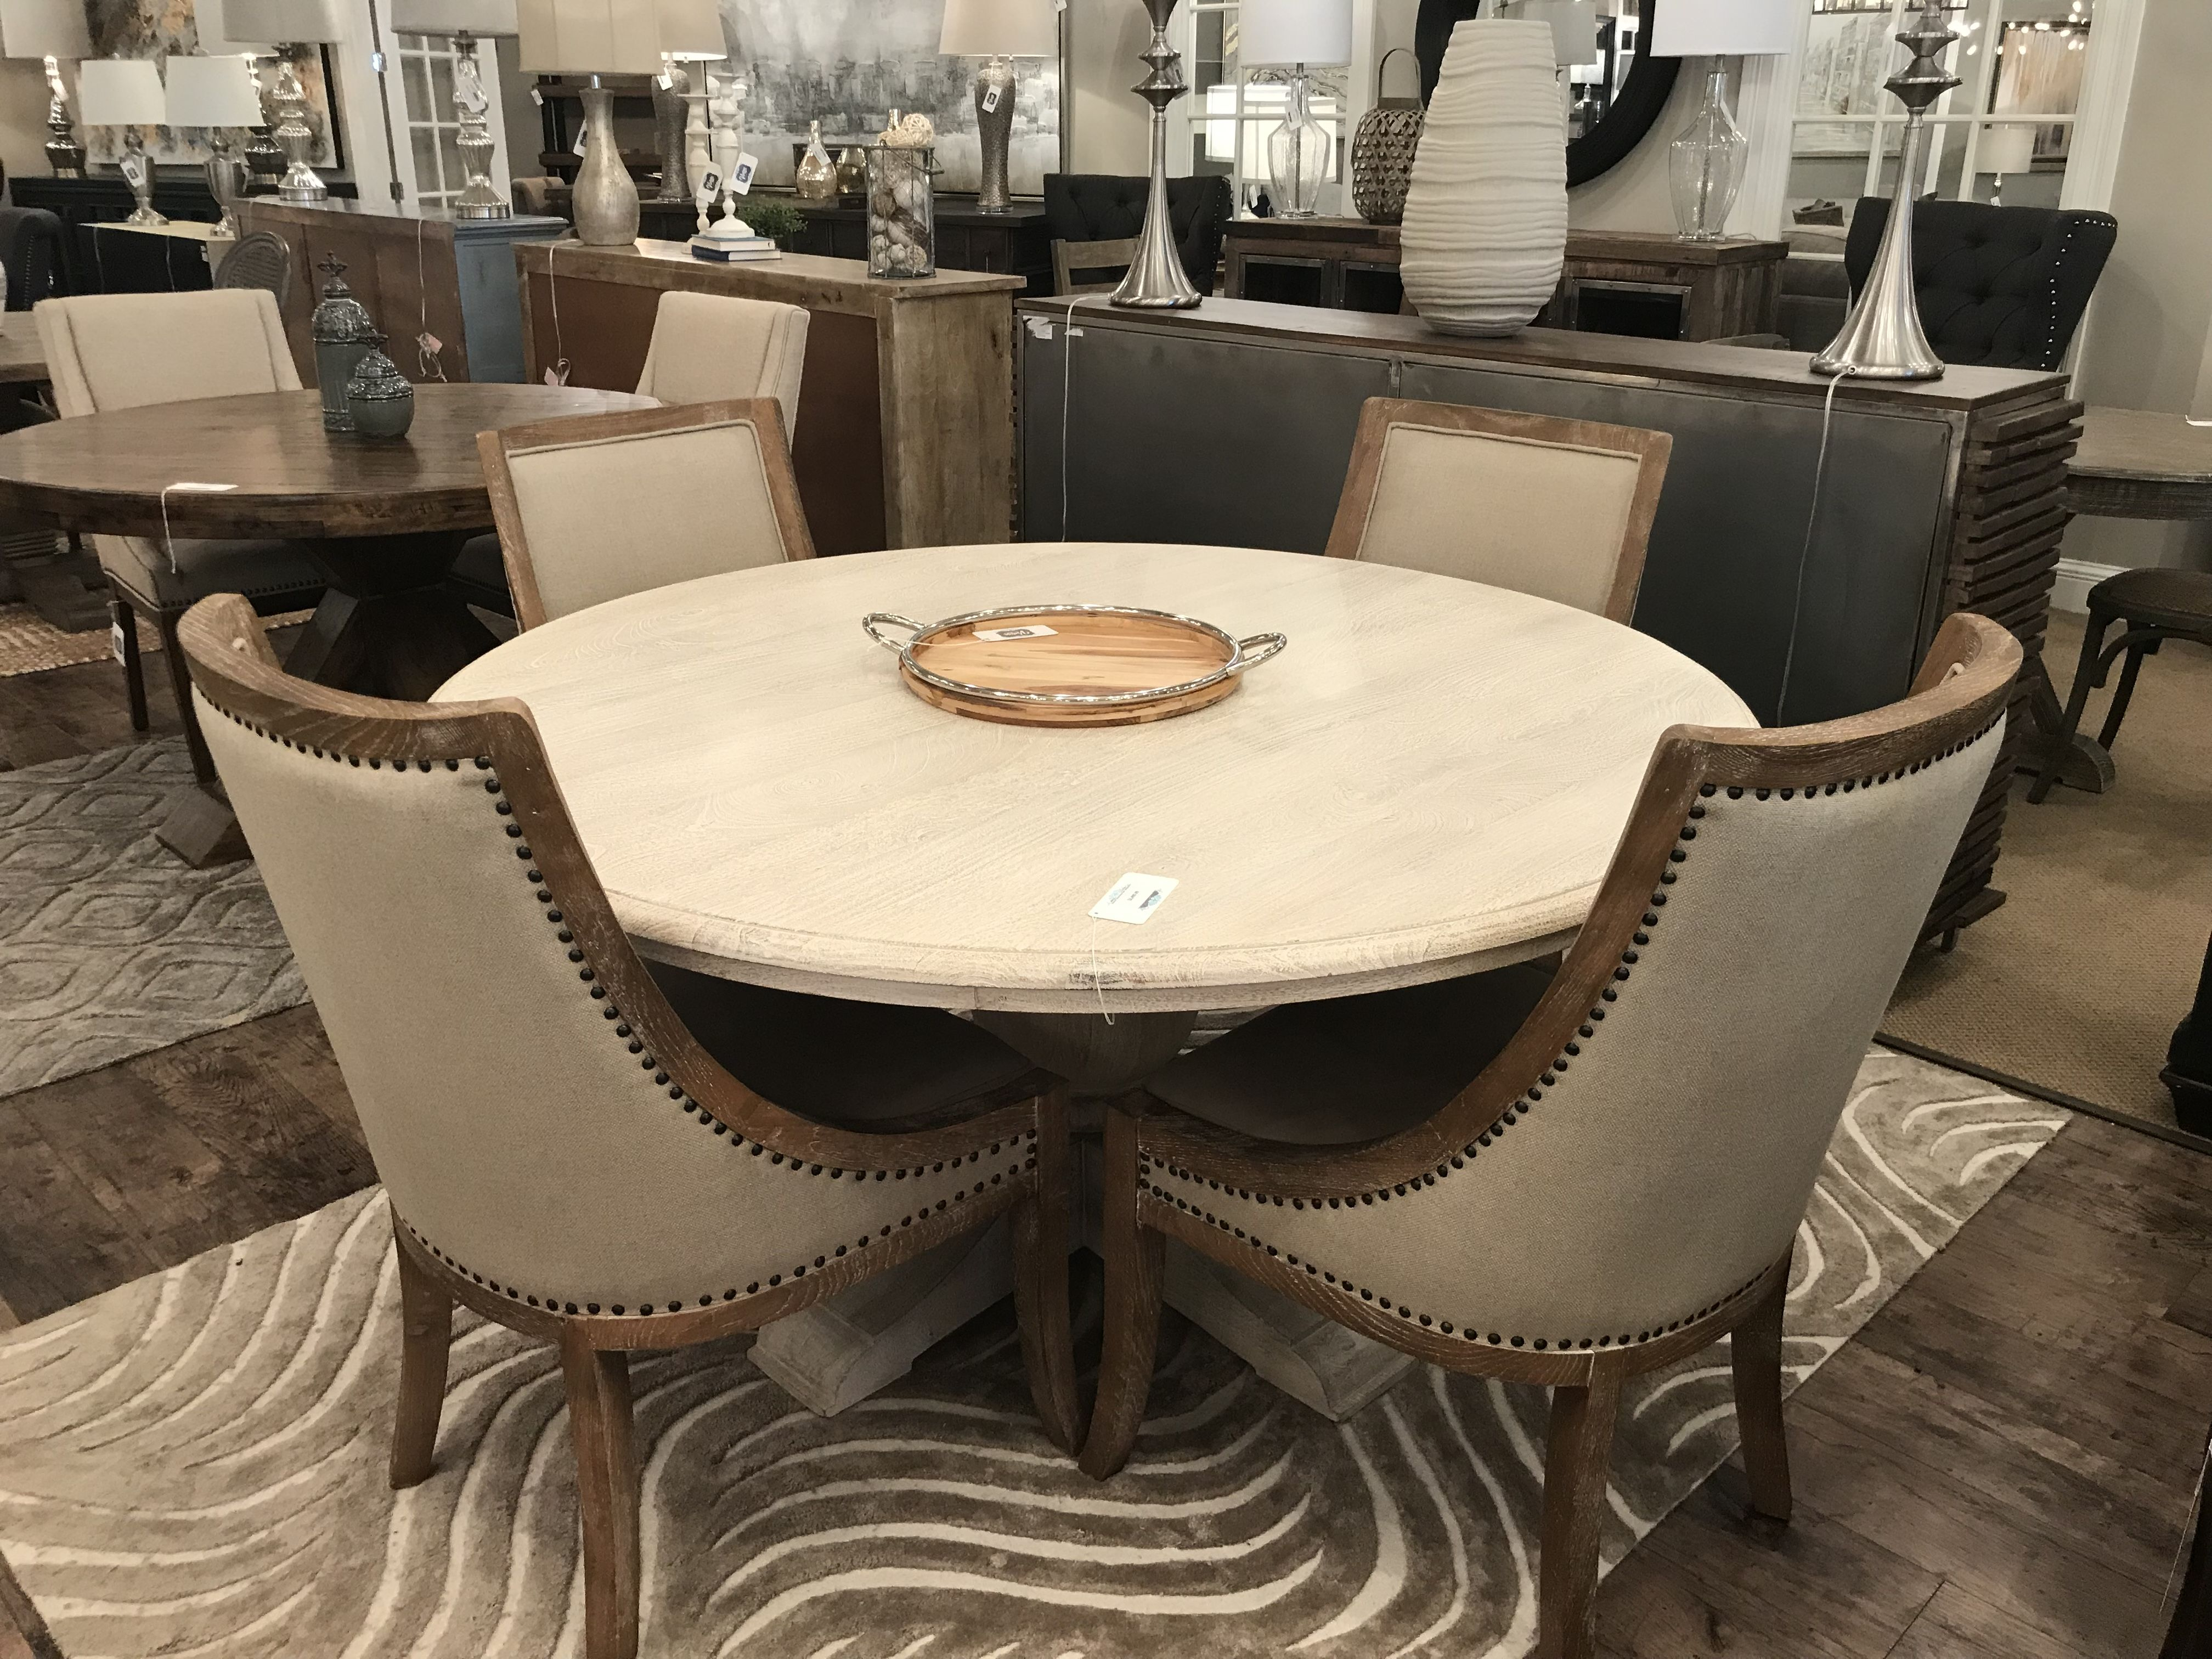 Terme 60 Round Dining Table Antique White 1 299 99 60 Round